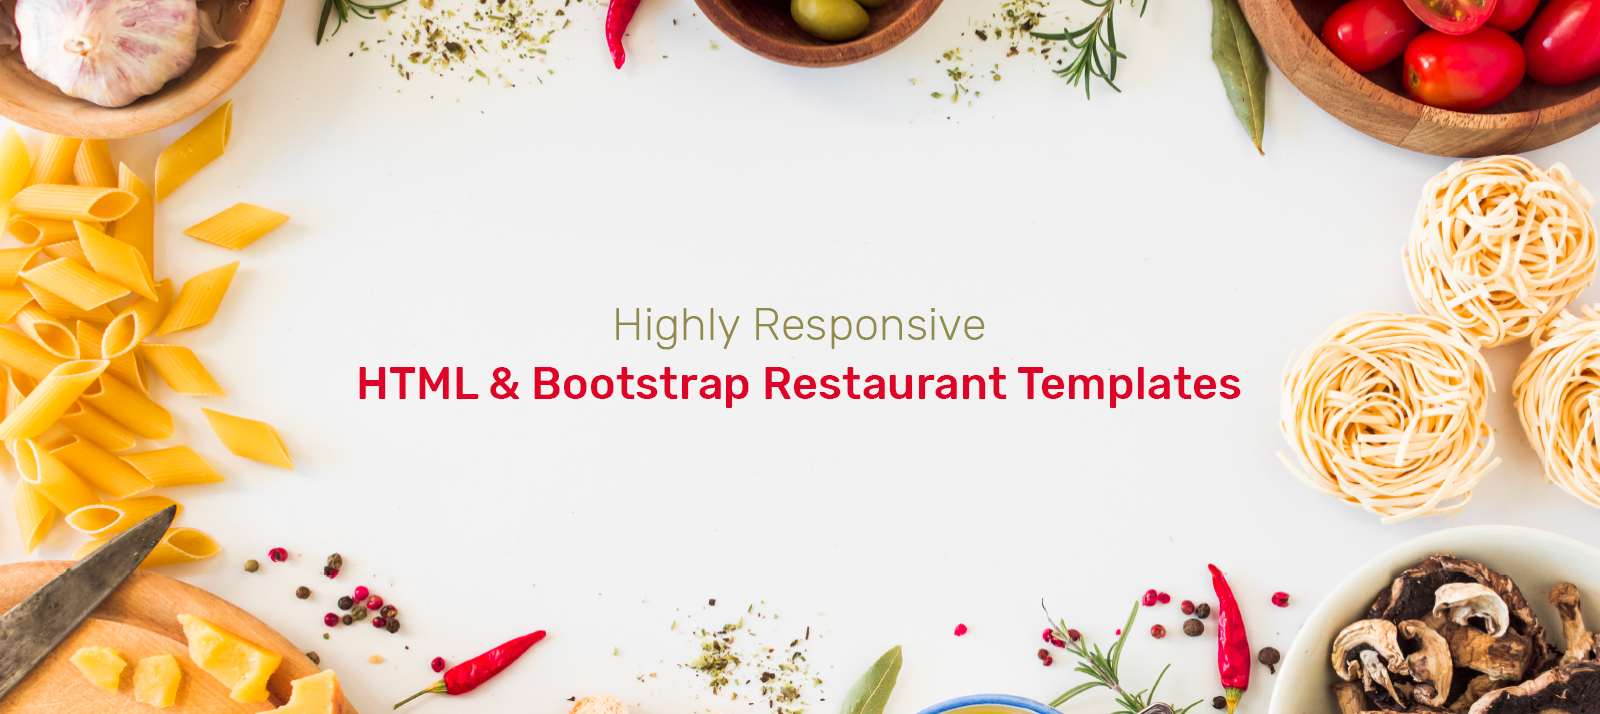 7 Highly Responsive HTML and Bootstrap Restaurant Templates